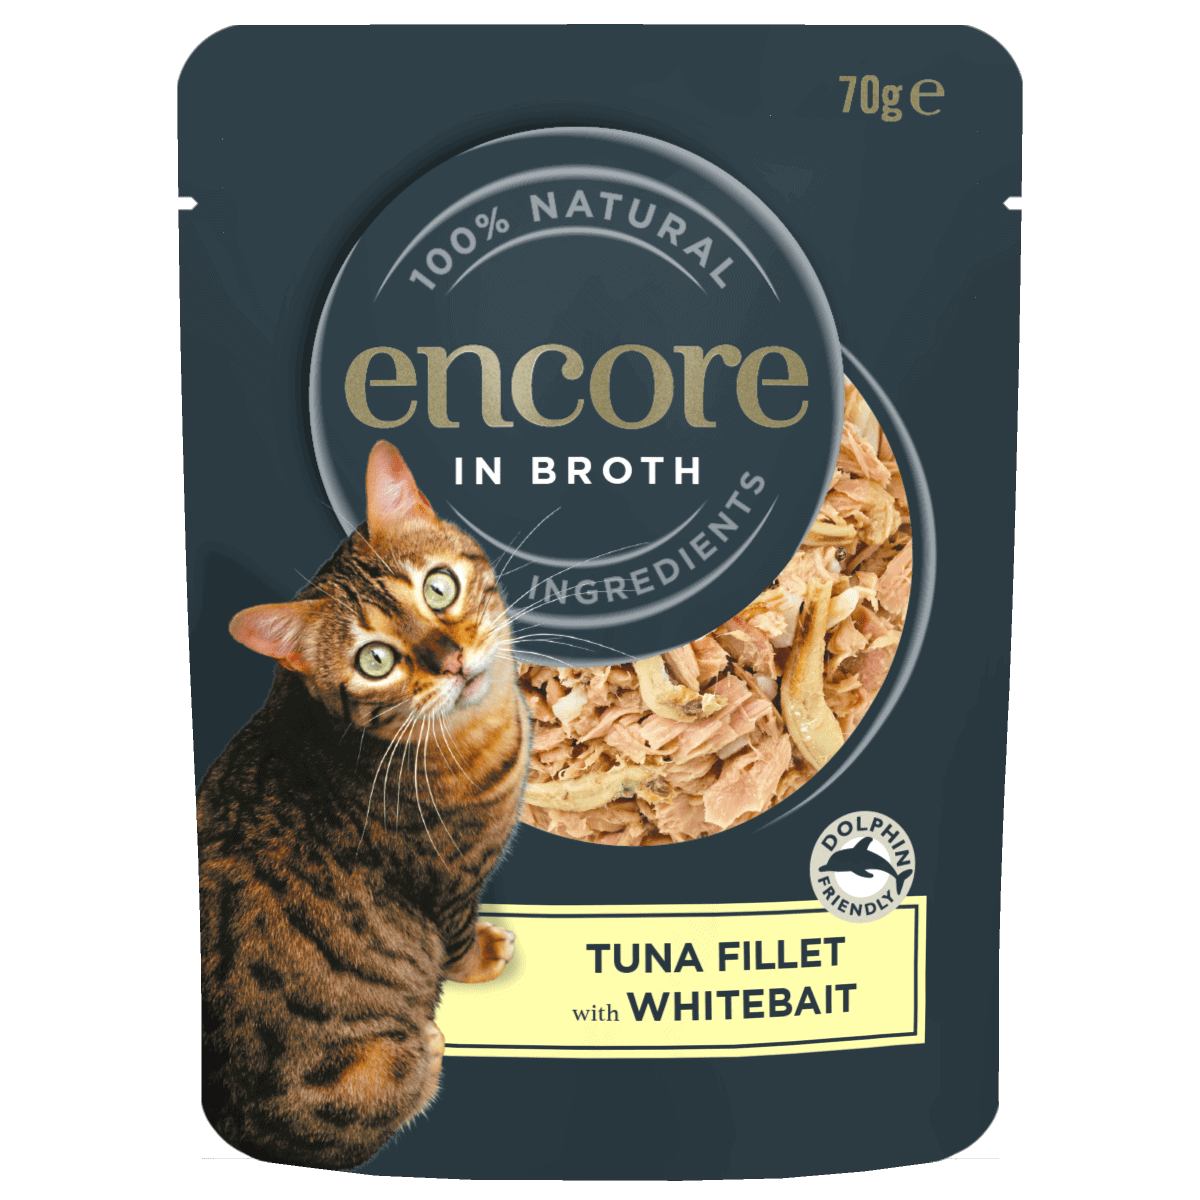 Tuna fillet with whitebait 70g Pouch